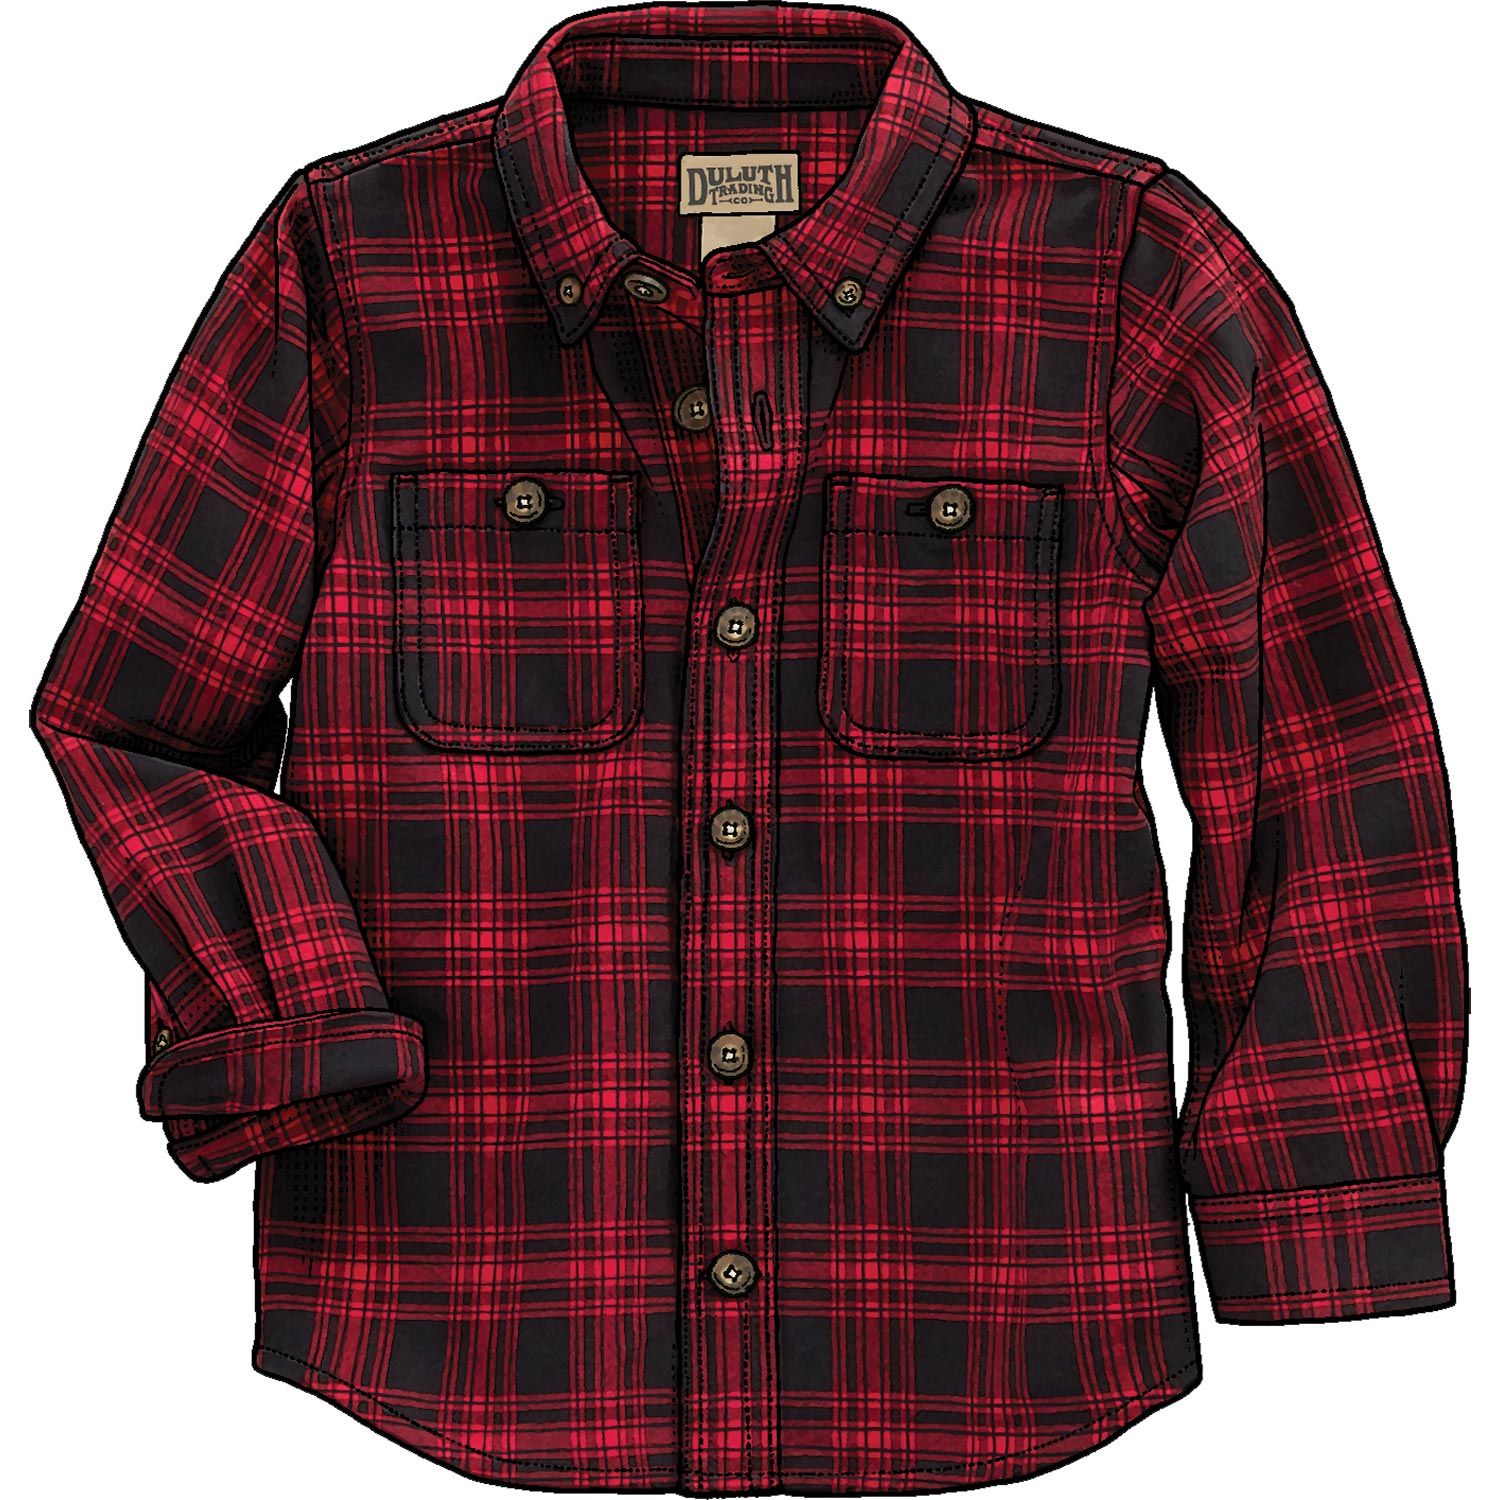 Duluth Flannel Shirts